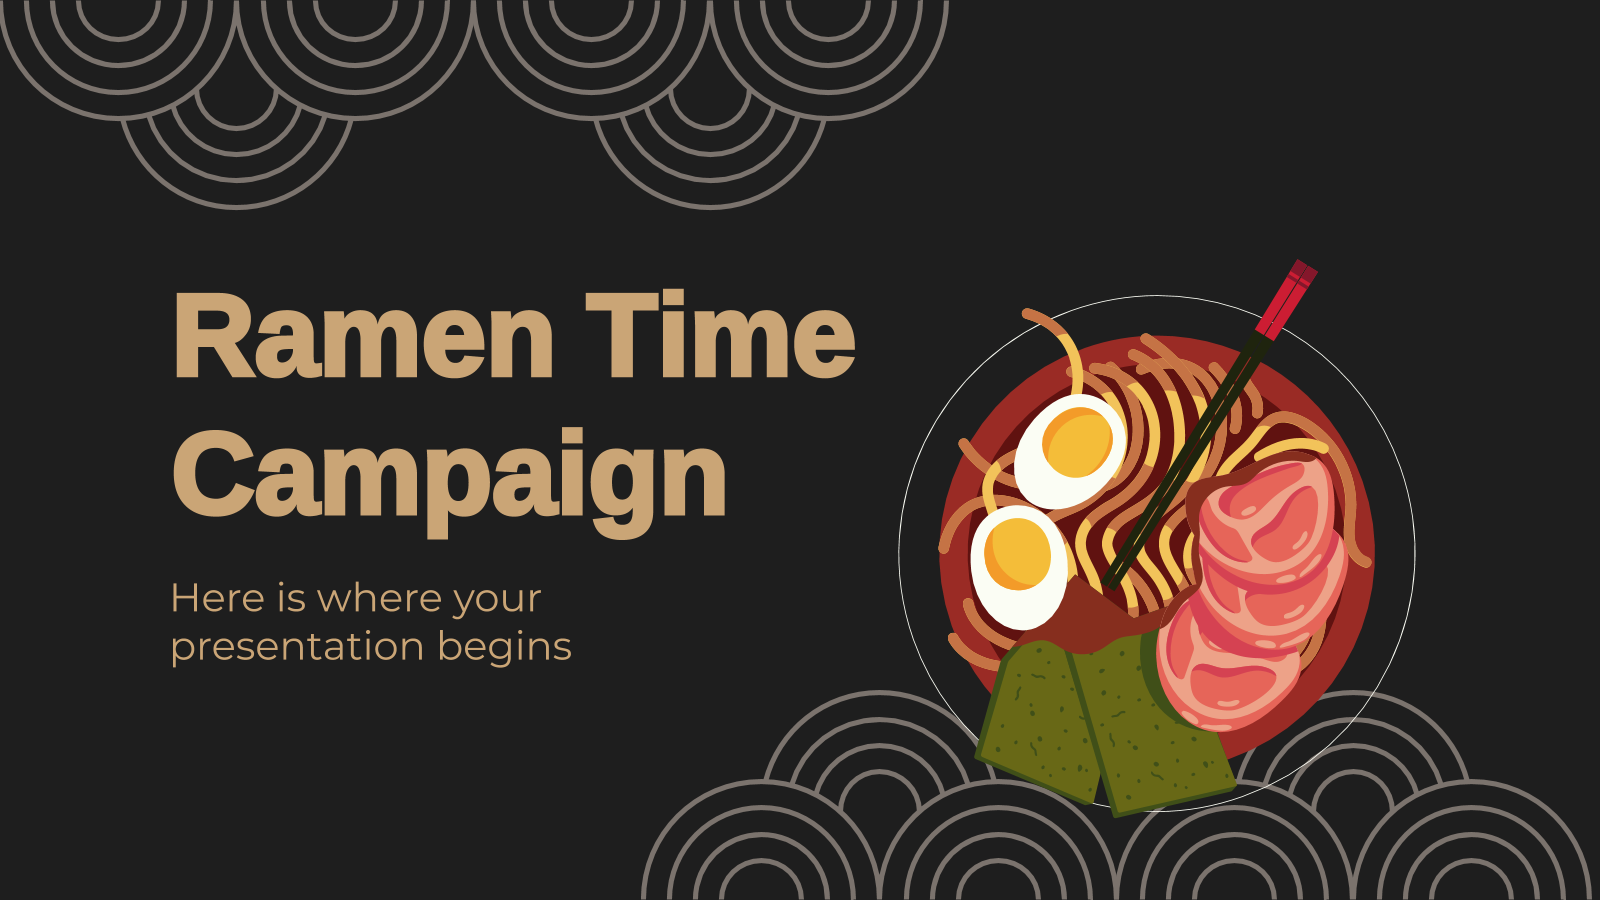 Ramen Time Campaign presentation template